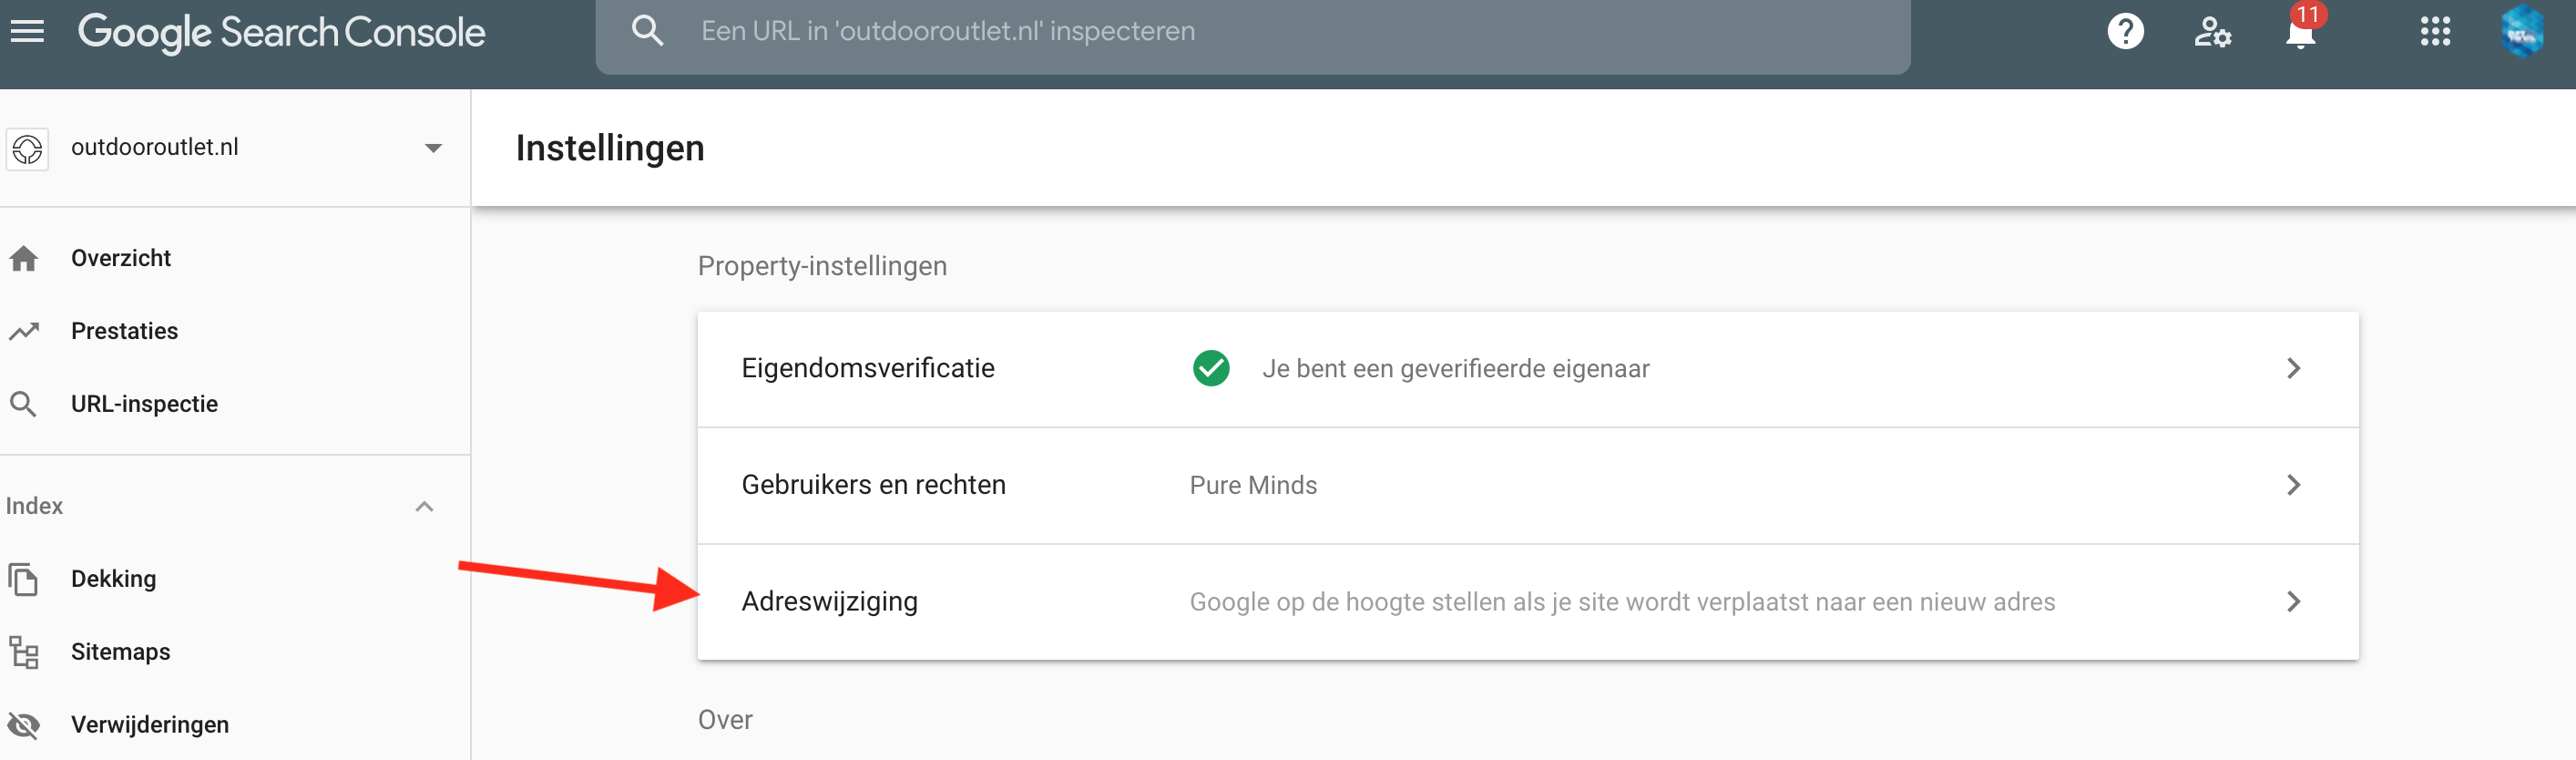 Search Console adreswijziging